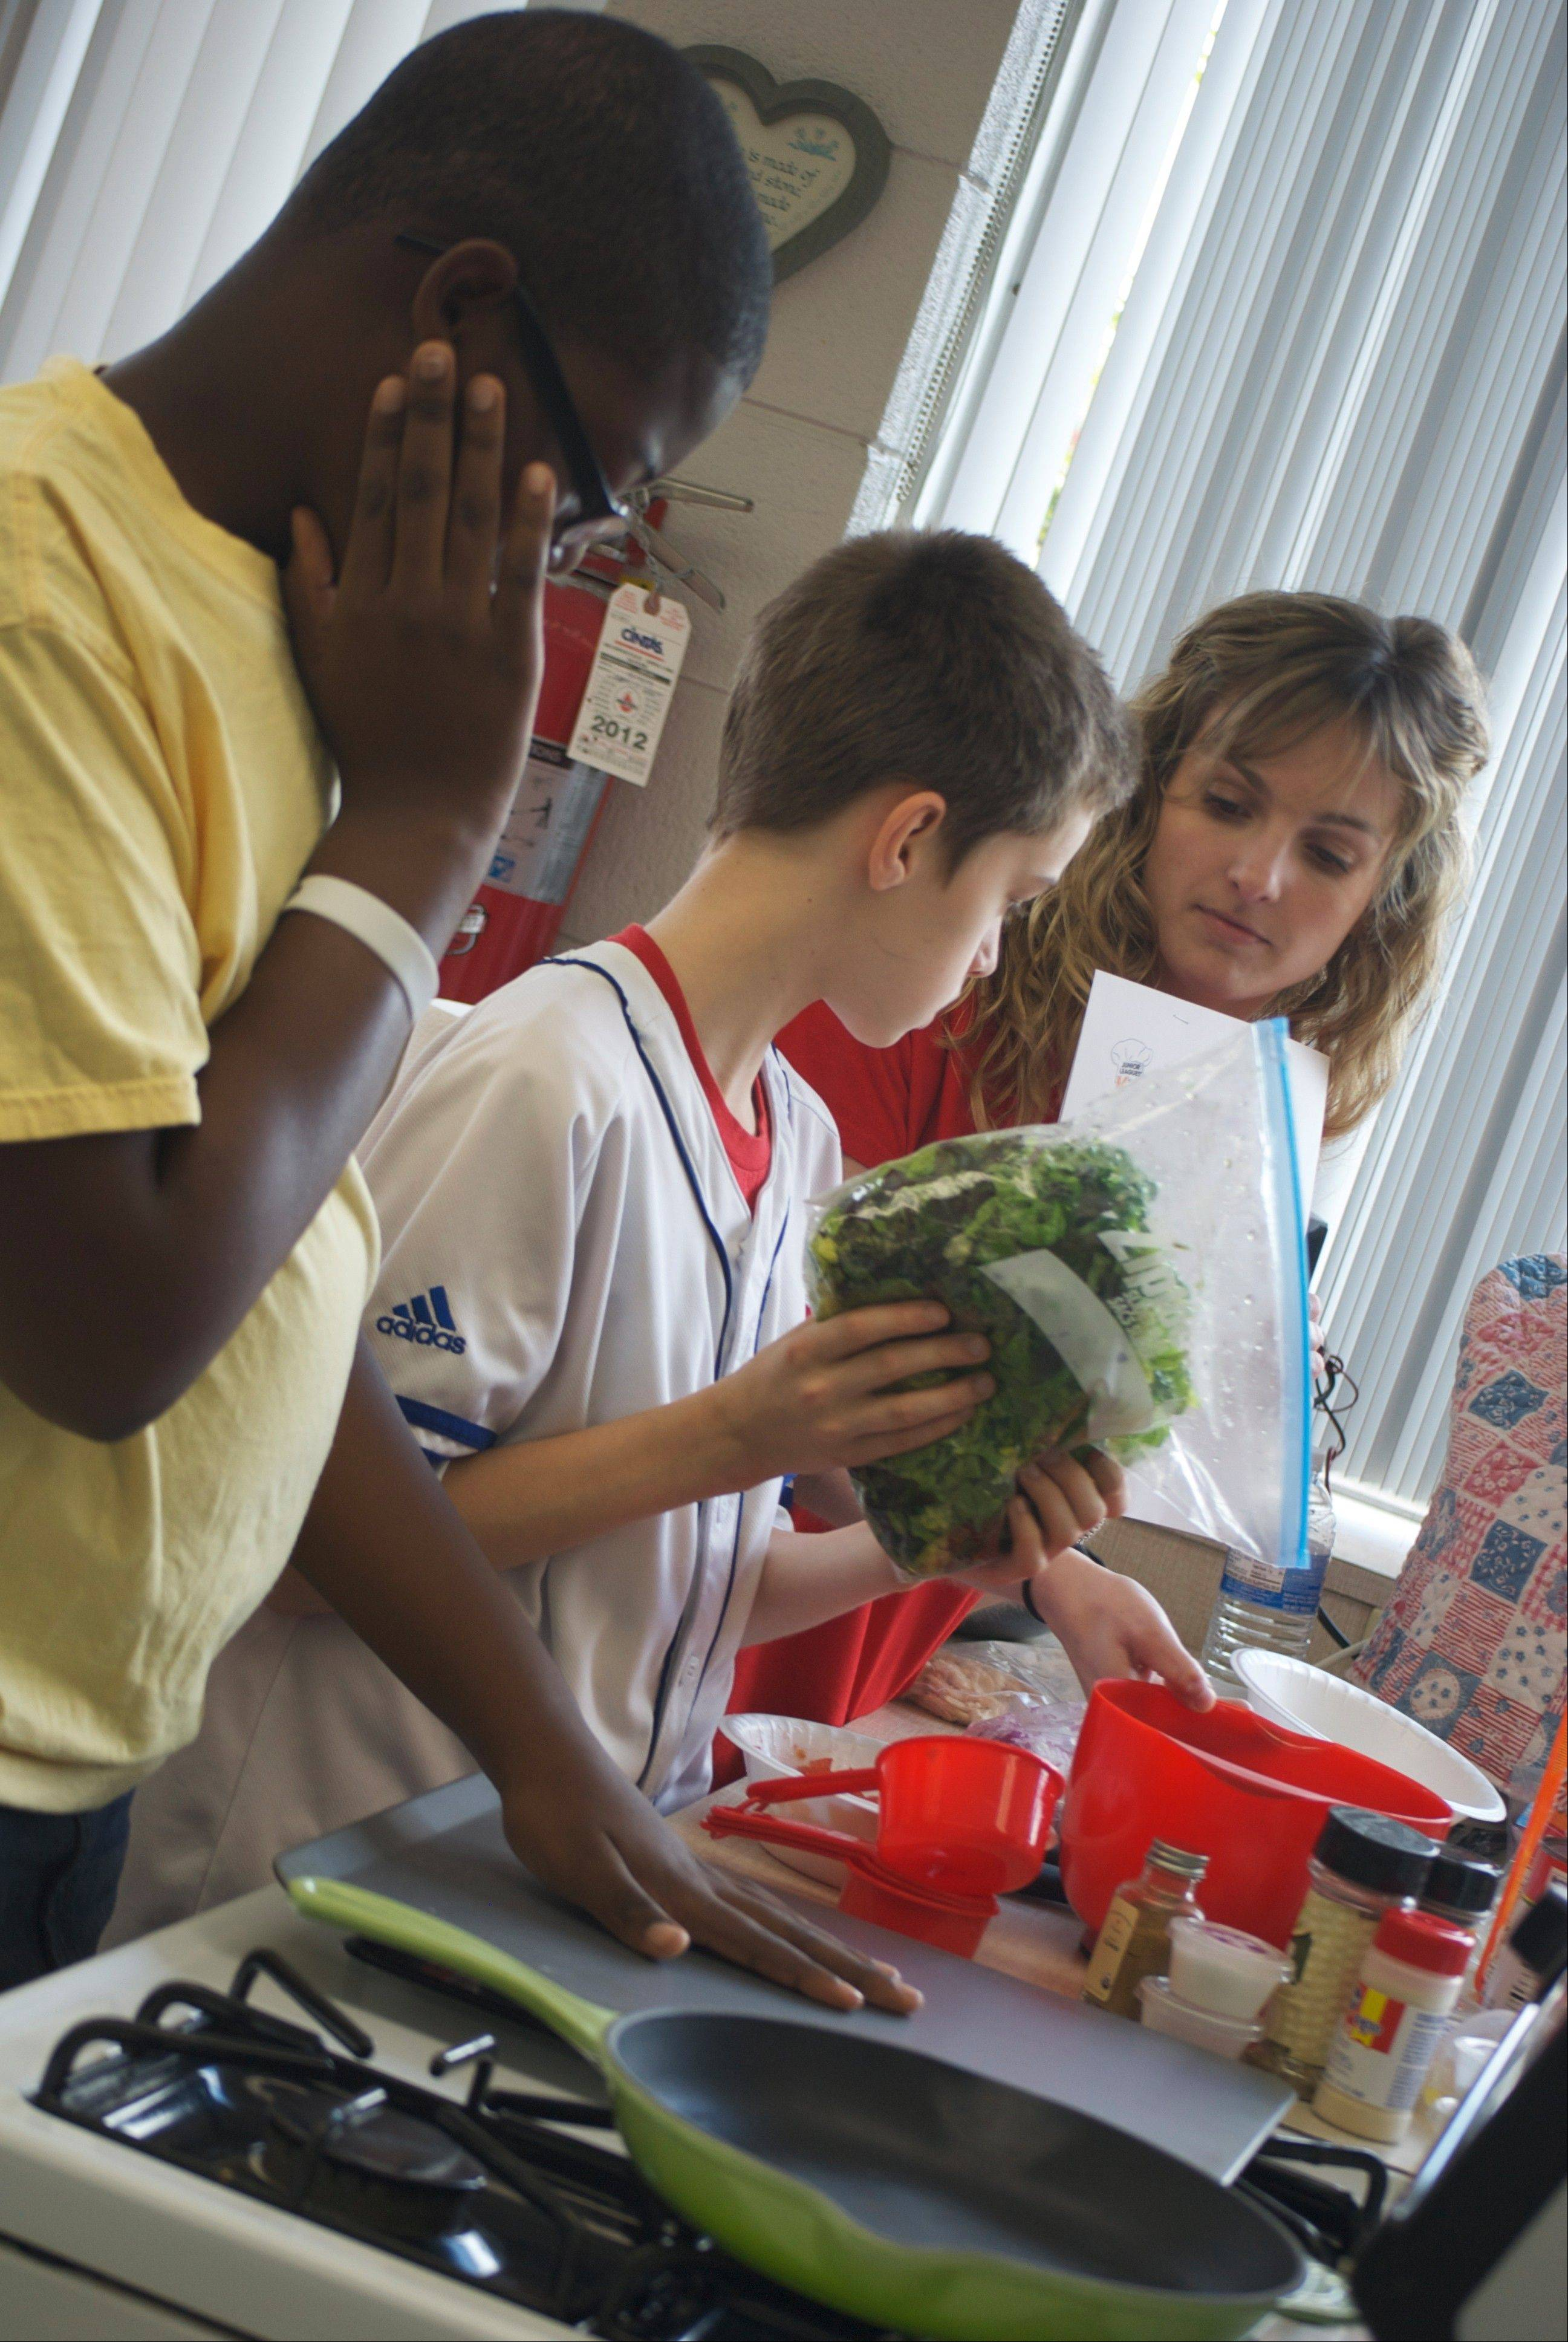 Through the annual Kids in the Kitchen program, the Junior League of Kane and DuPage Counties teaches kids about nutrition and how to make healthy meals and snacks.